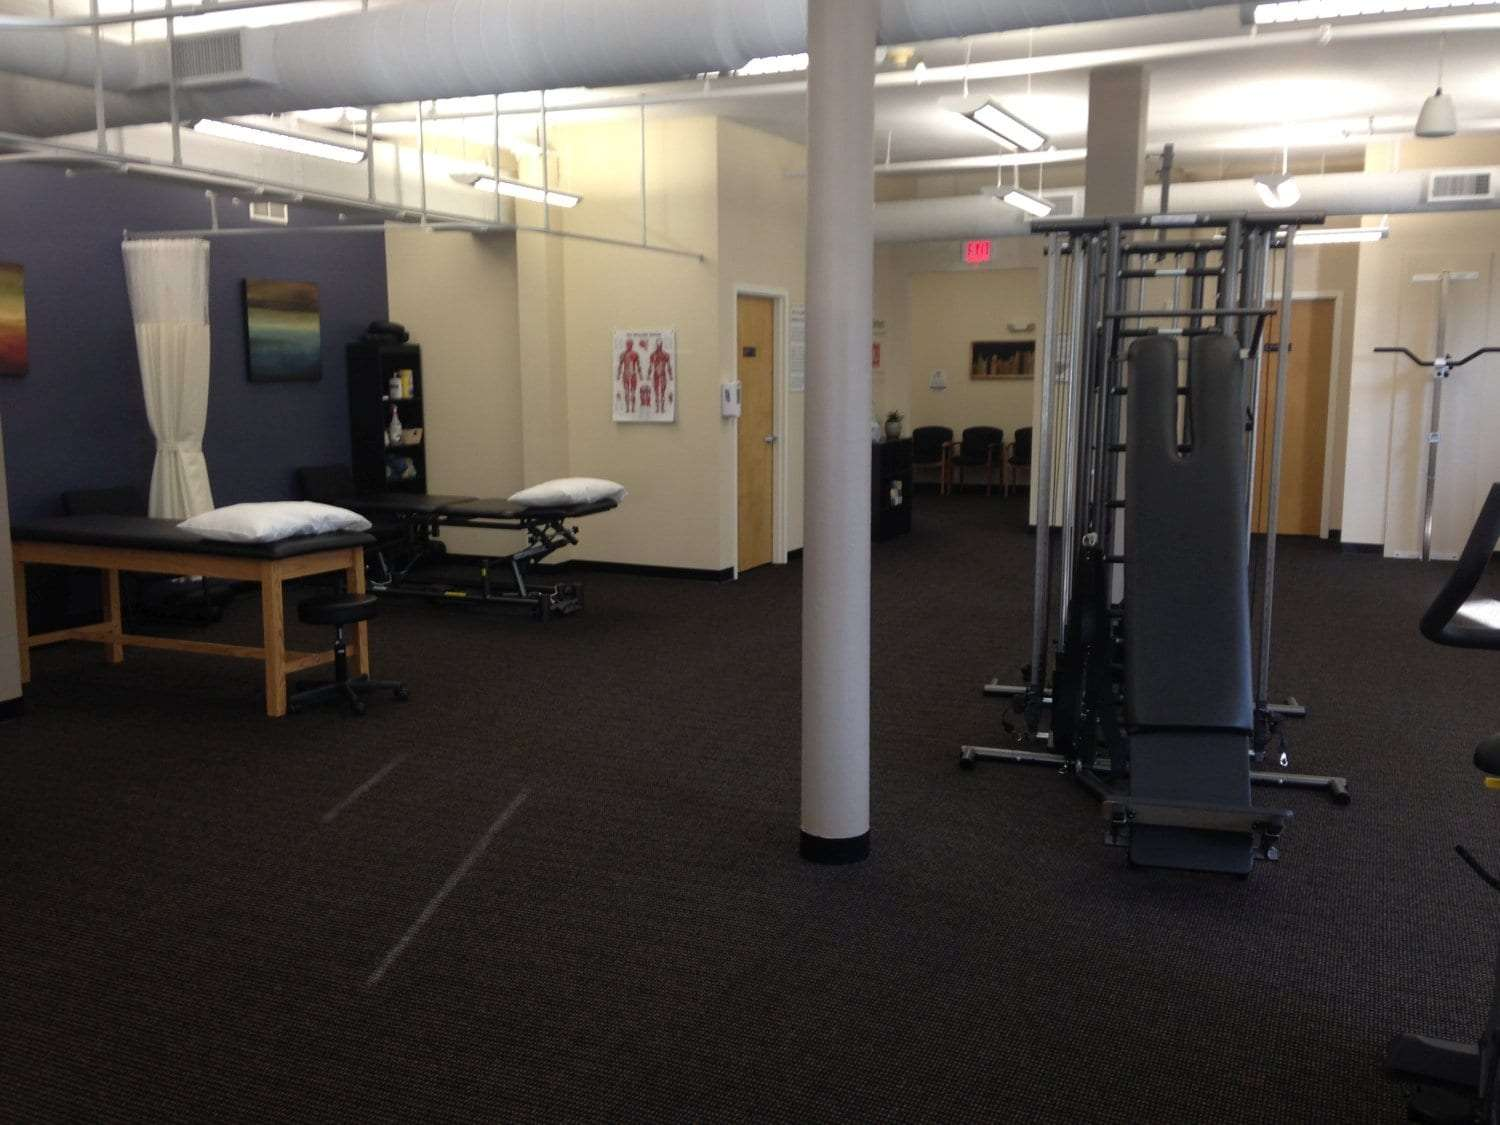 This is an image of the interior of our physical therapy clinic in Watertown, Massachusetts.